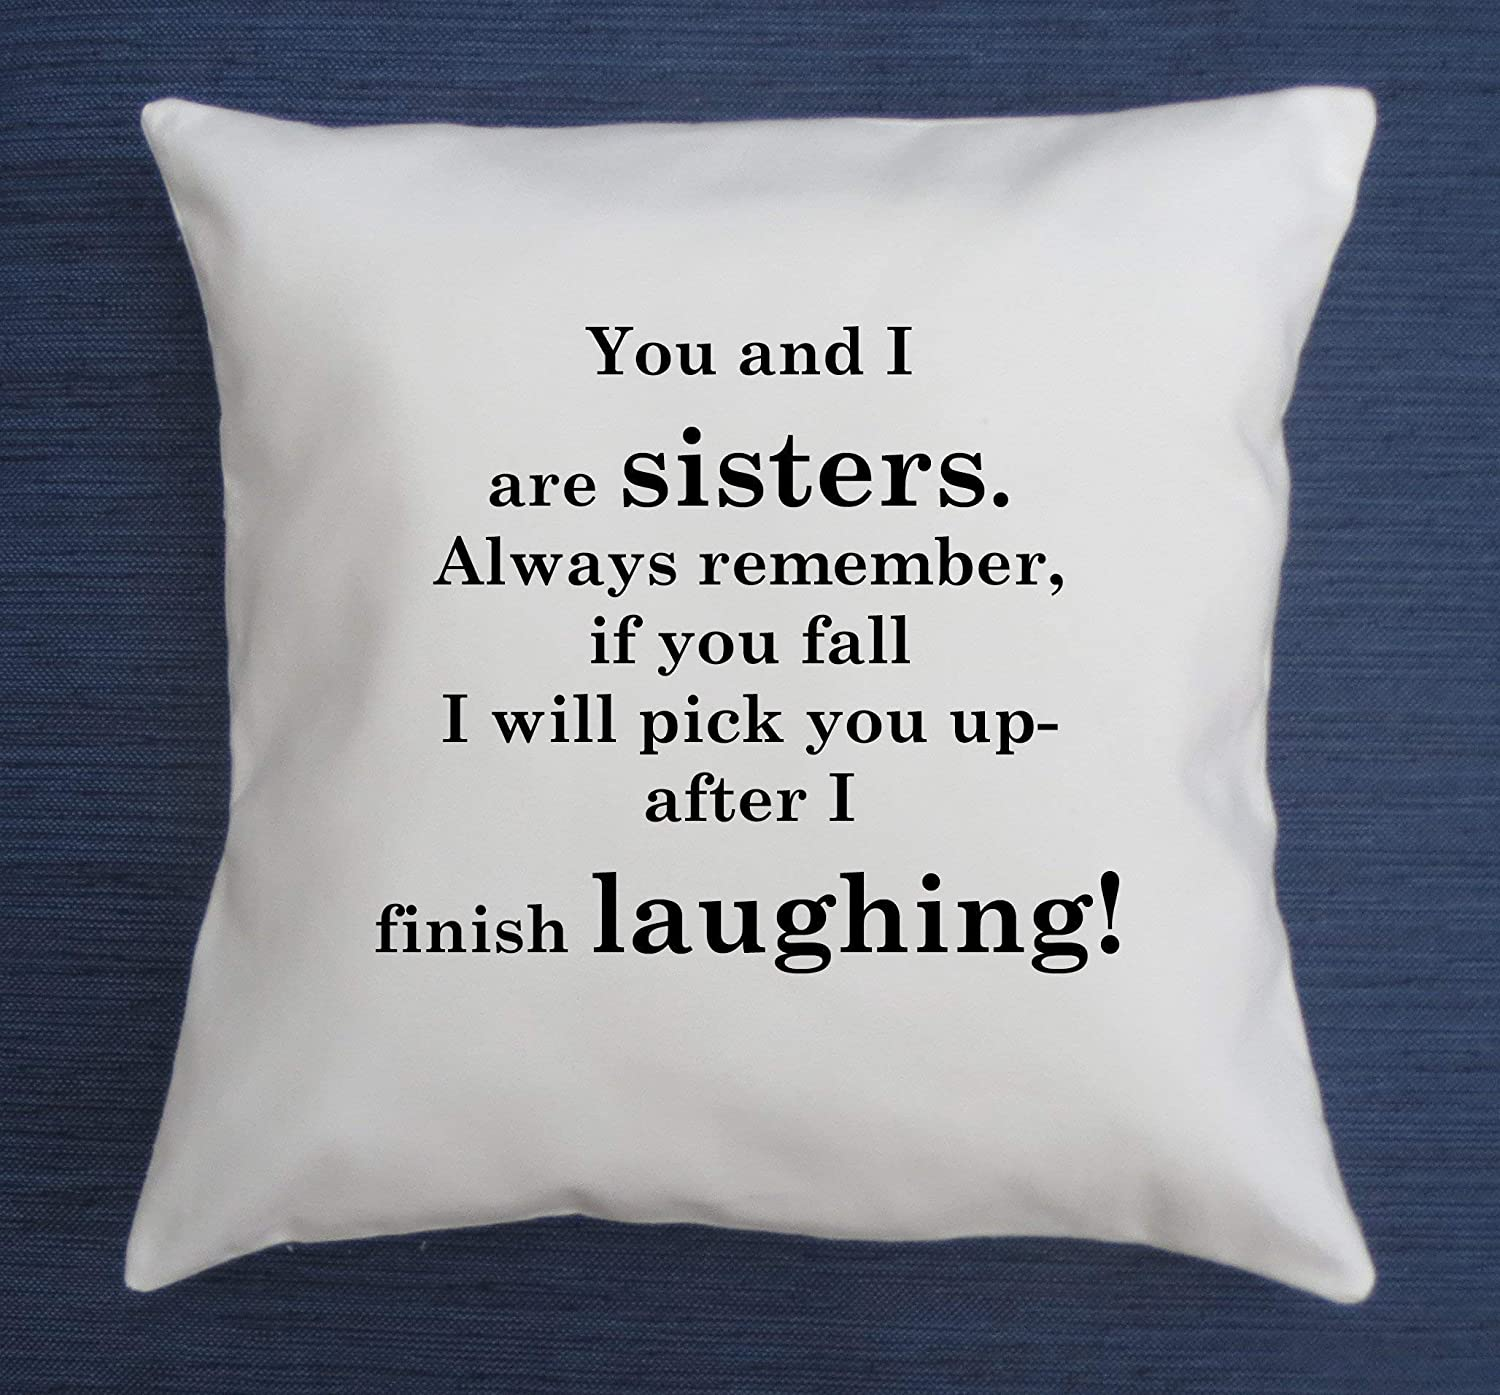 Amazon.com: Sister pillow cover, Funny quote throw pillow ...